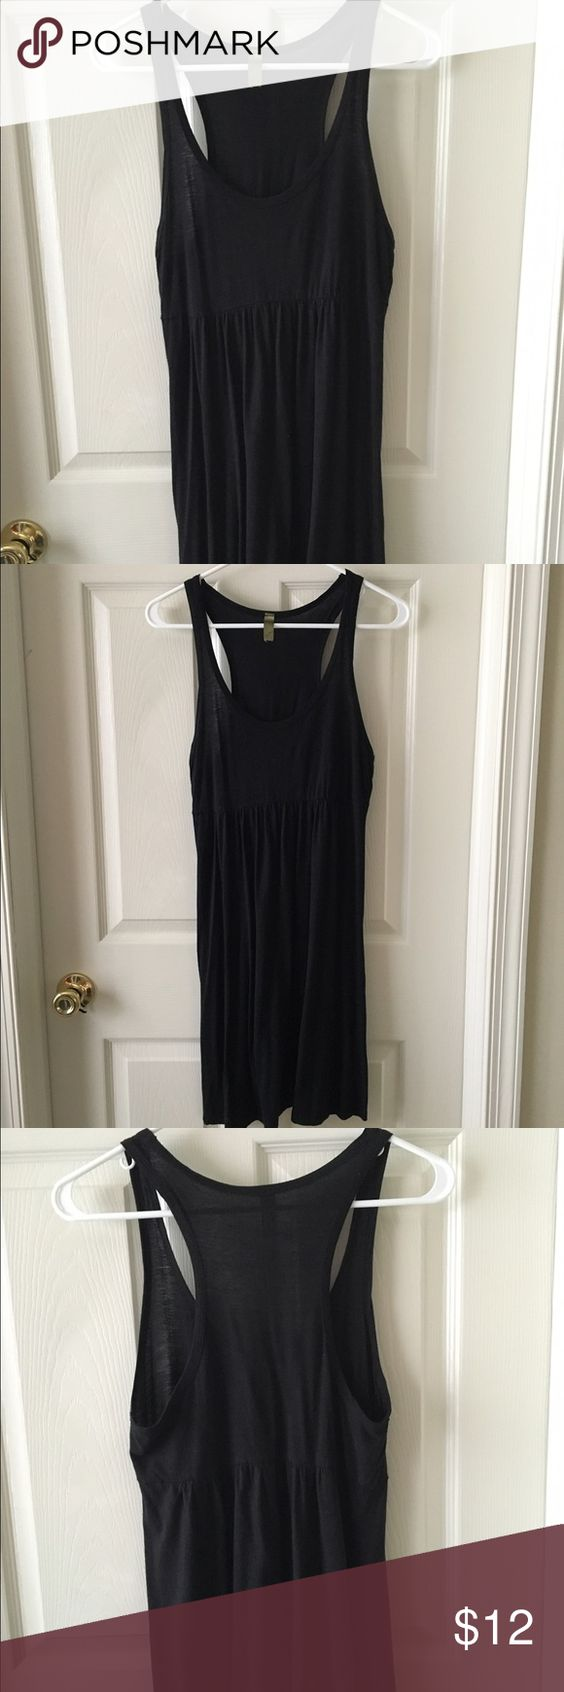 Black racer back sundress Simple little black sundress. Cinched a bit under the bust. Very comfortable and easy to throw on Lush Dresses Mini